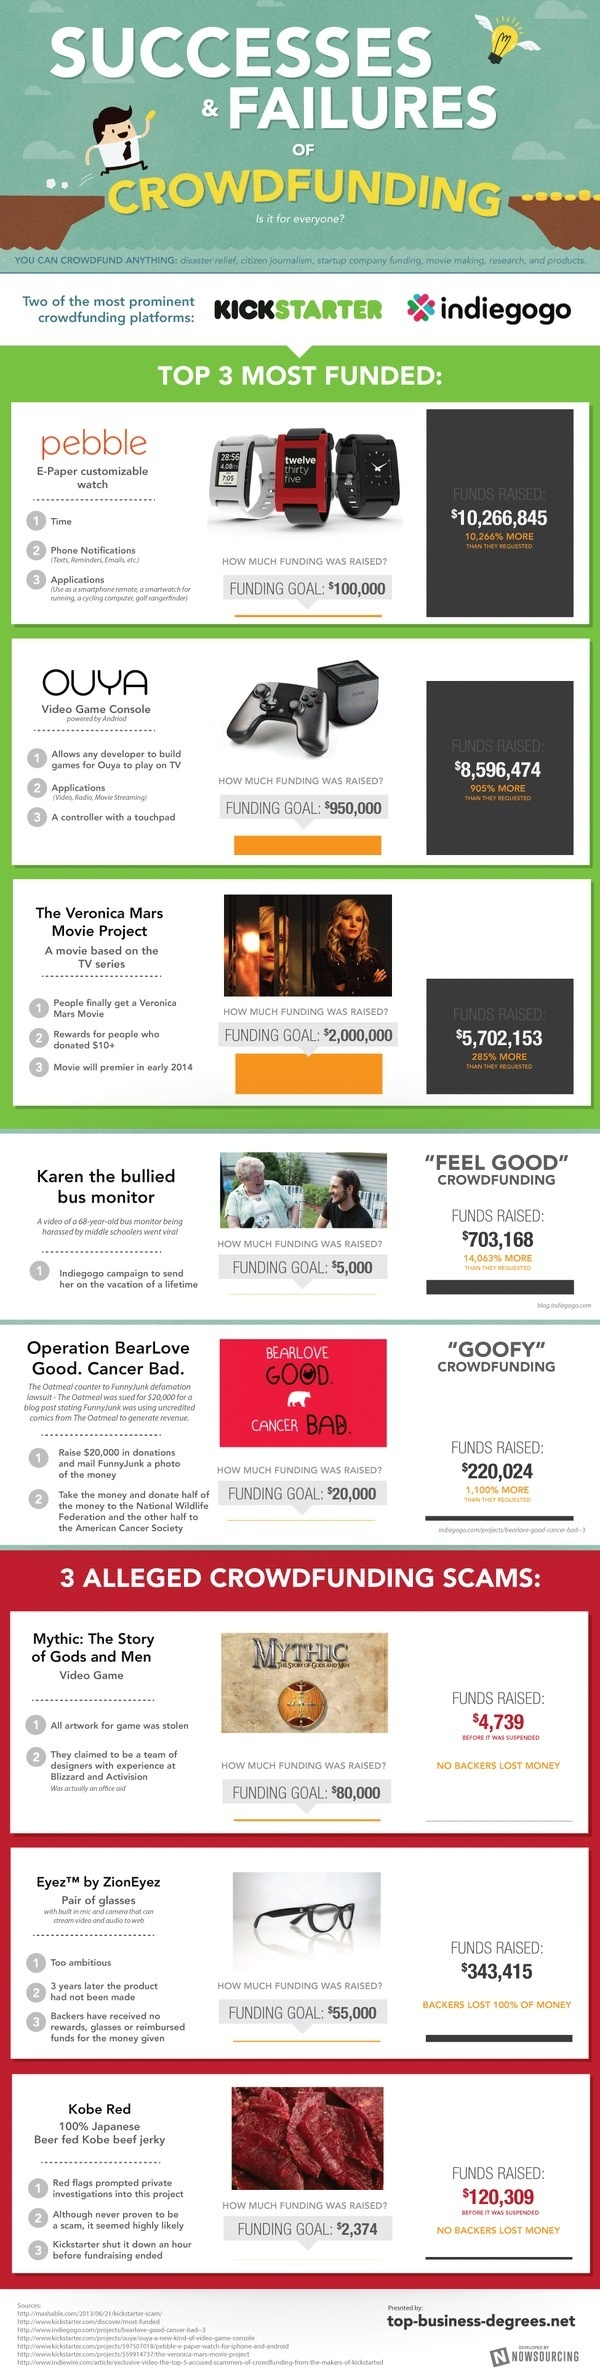 Successes and Failures of Crowdfunding #infographic